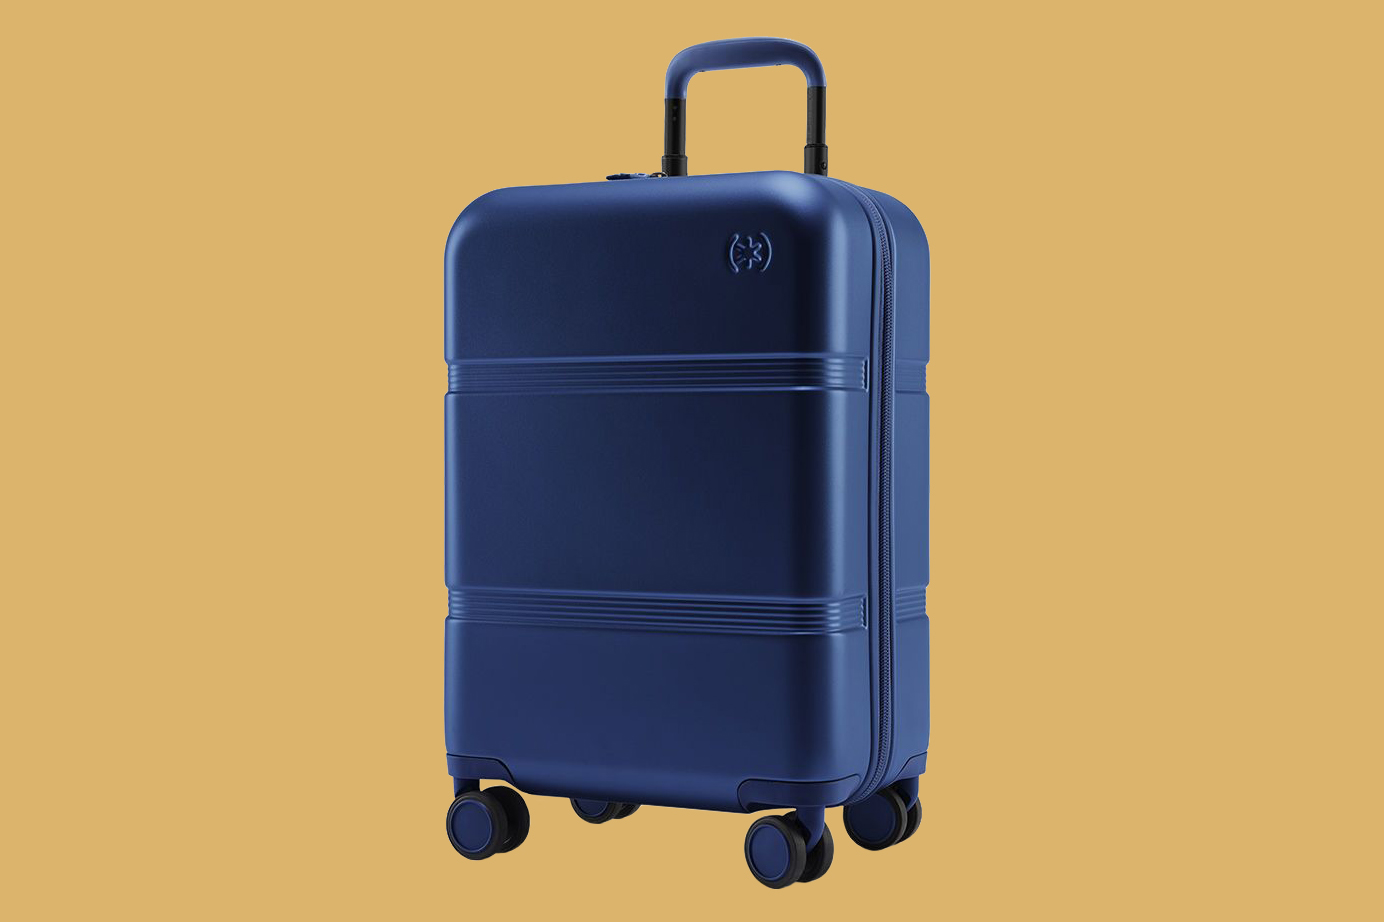 Speck Travel 22-inch Carry-On Luggage